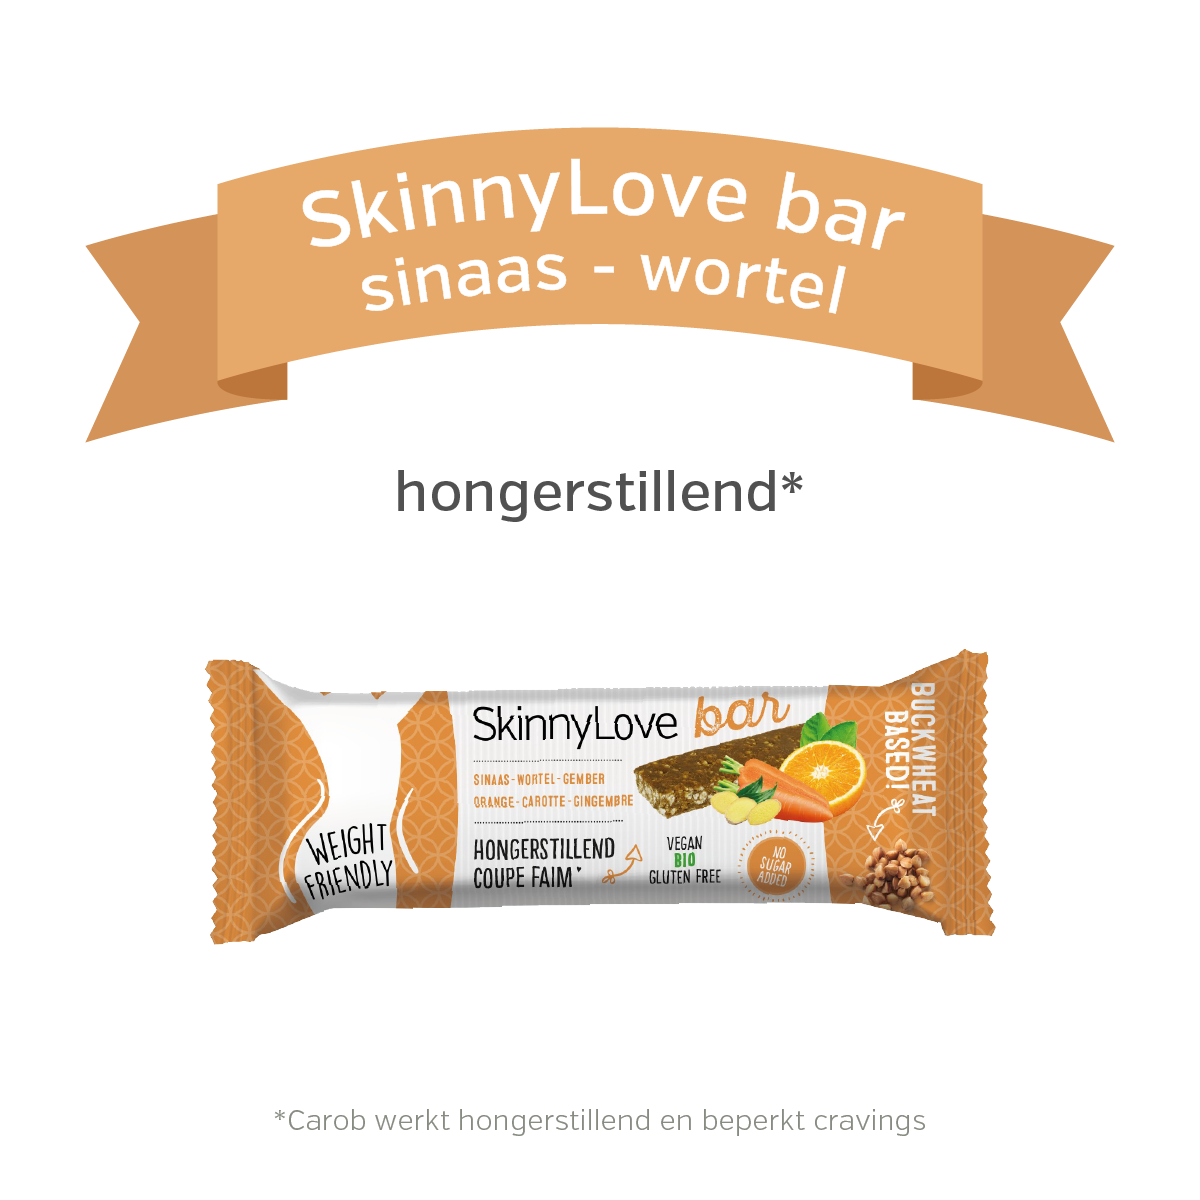 SkinnyLove bar | sinaas - wortel